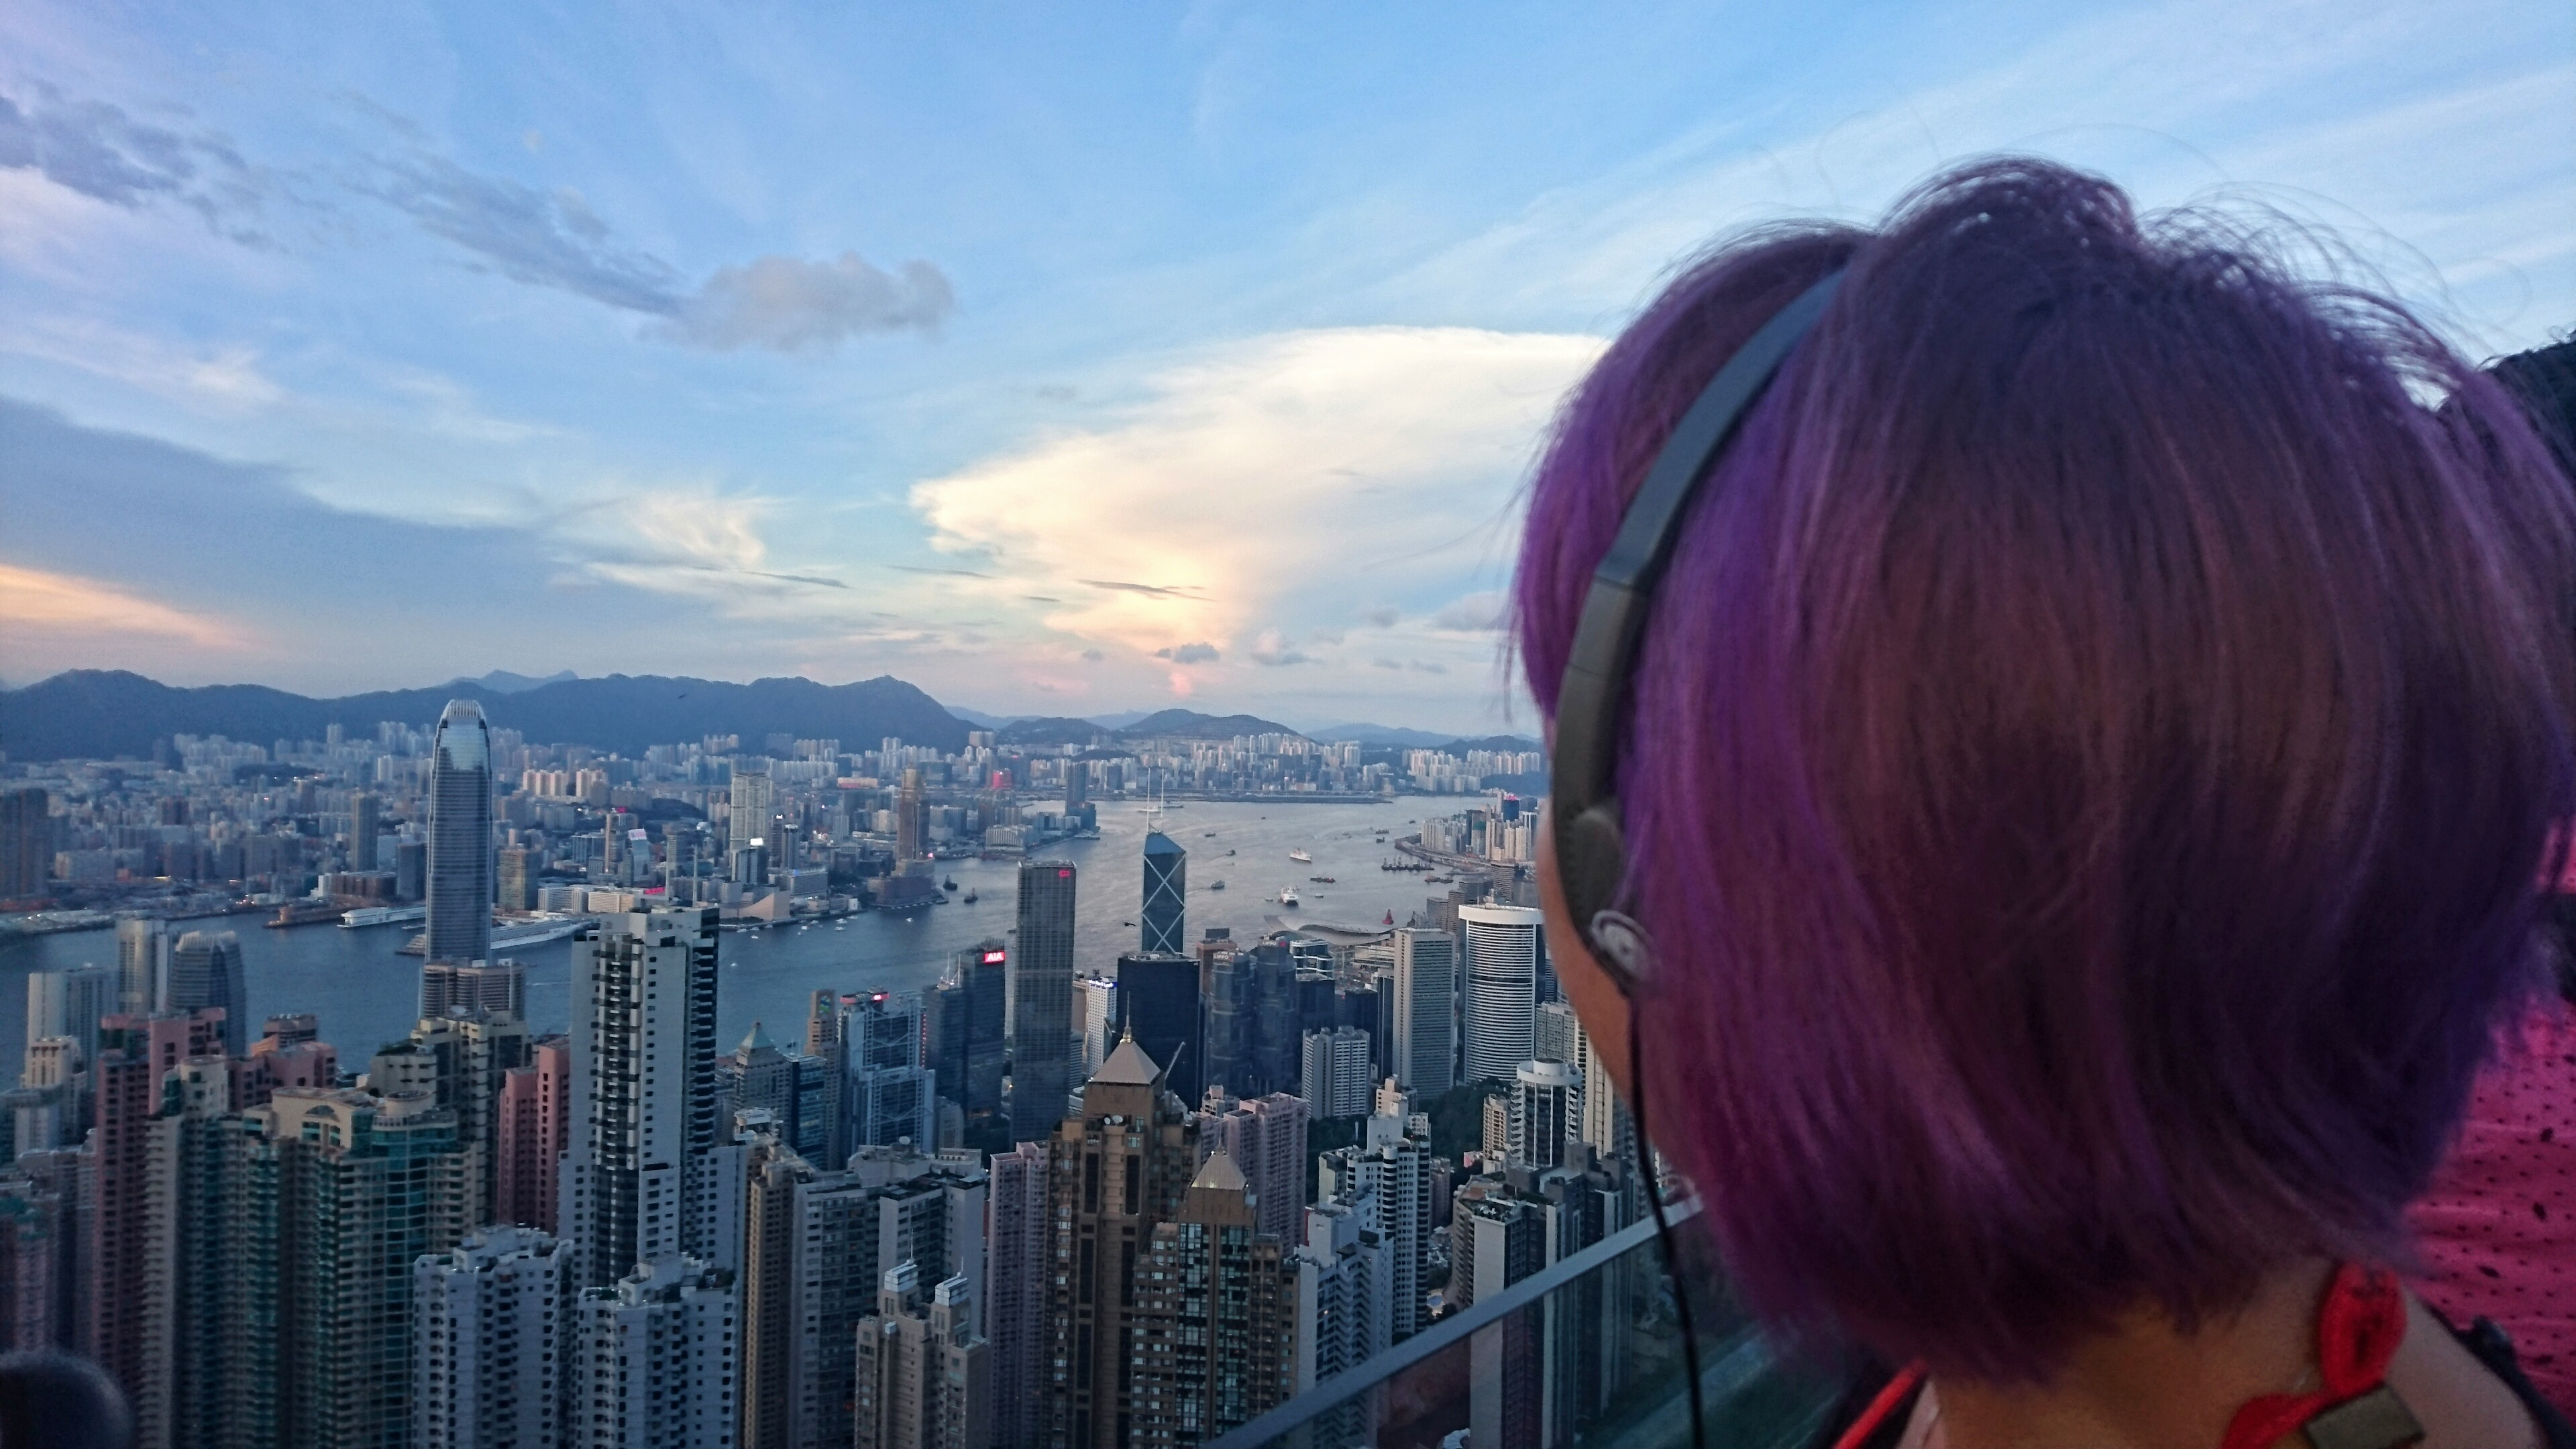 View of Victoria Harbour from The Peak, Hong Kong